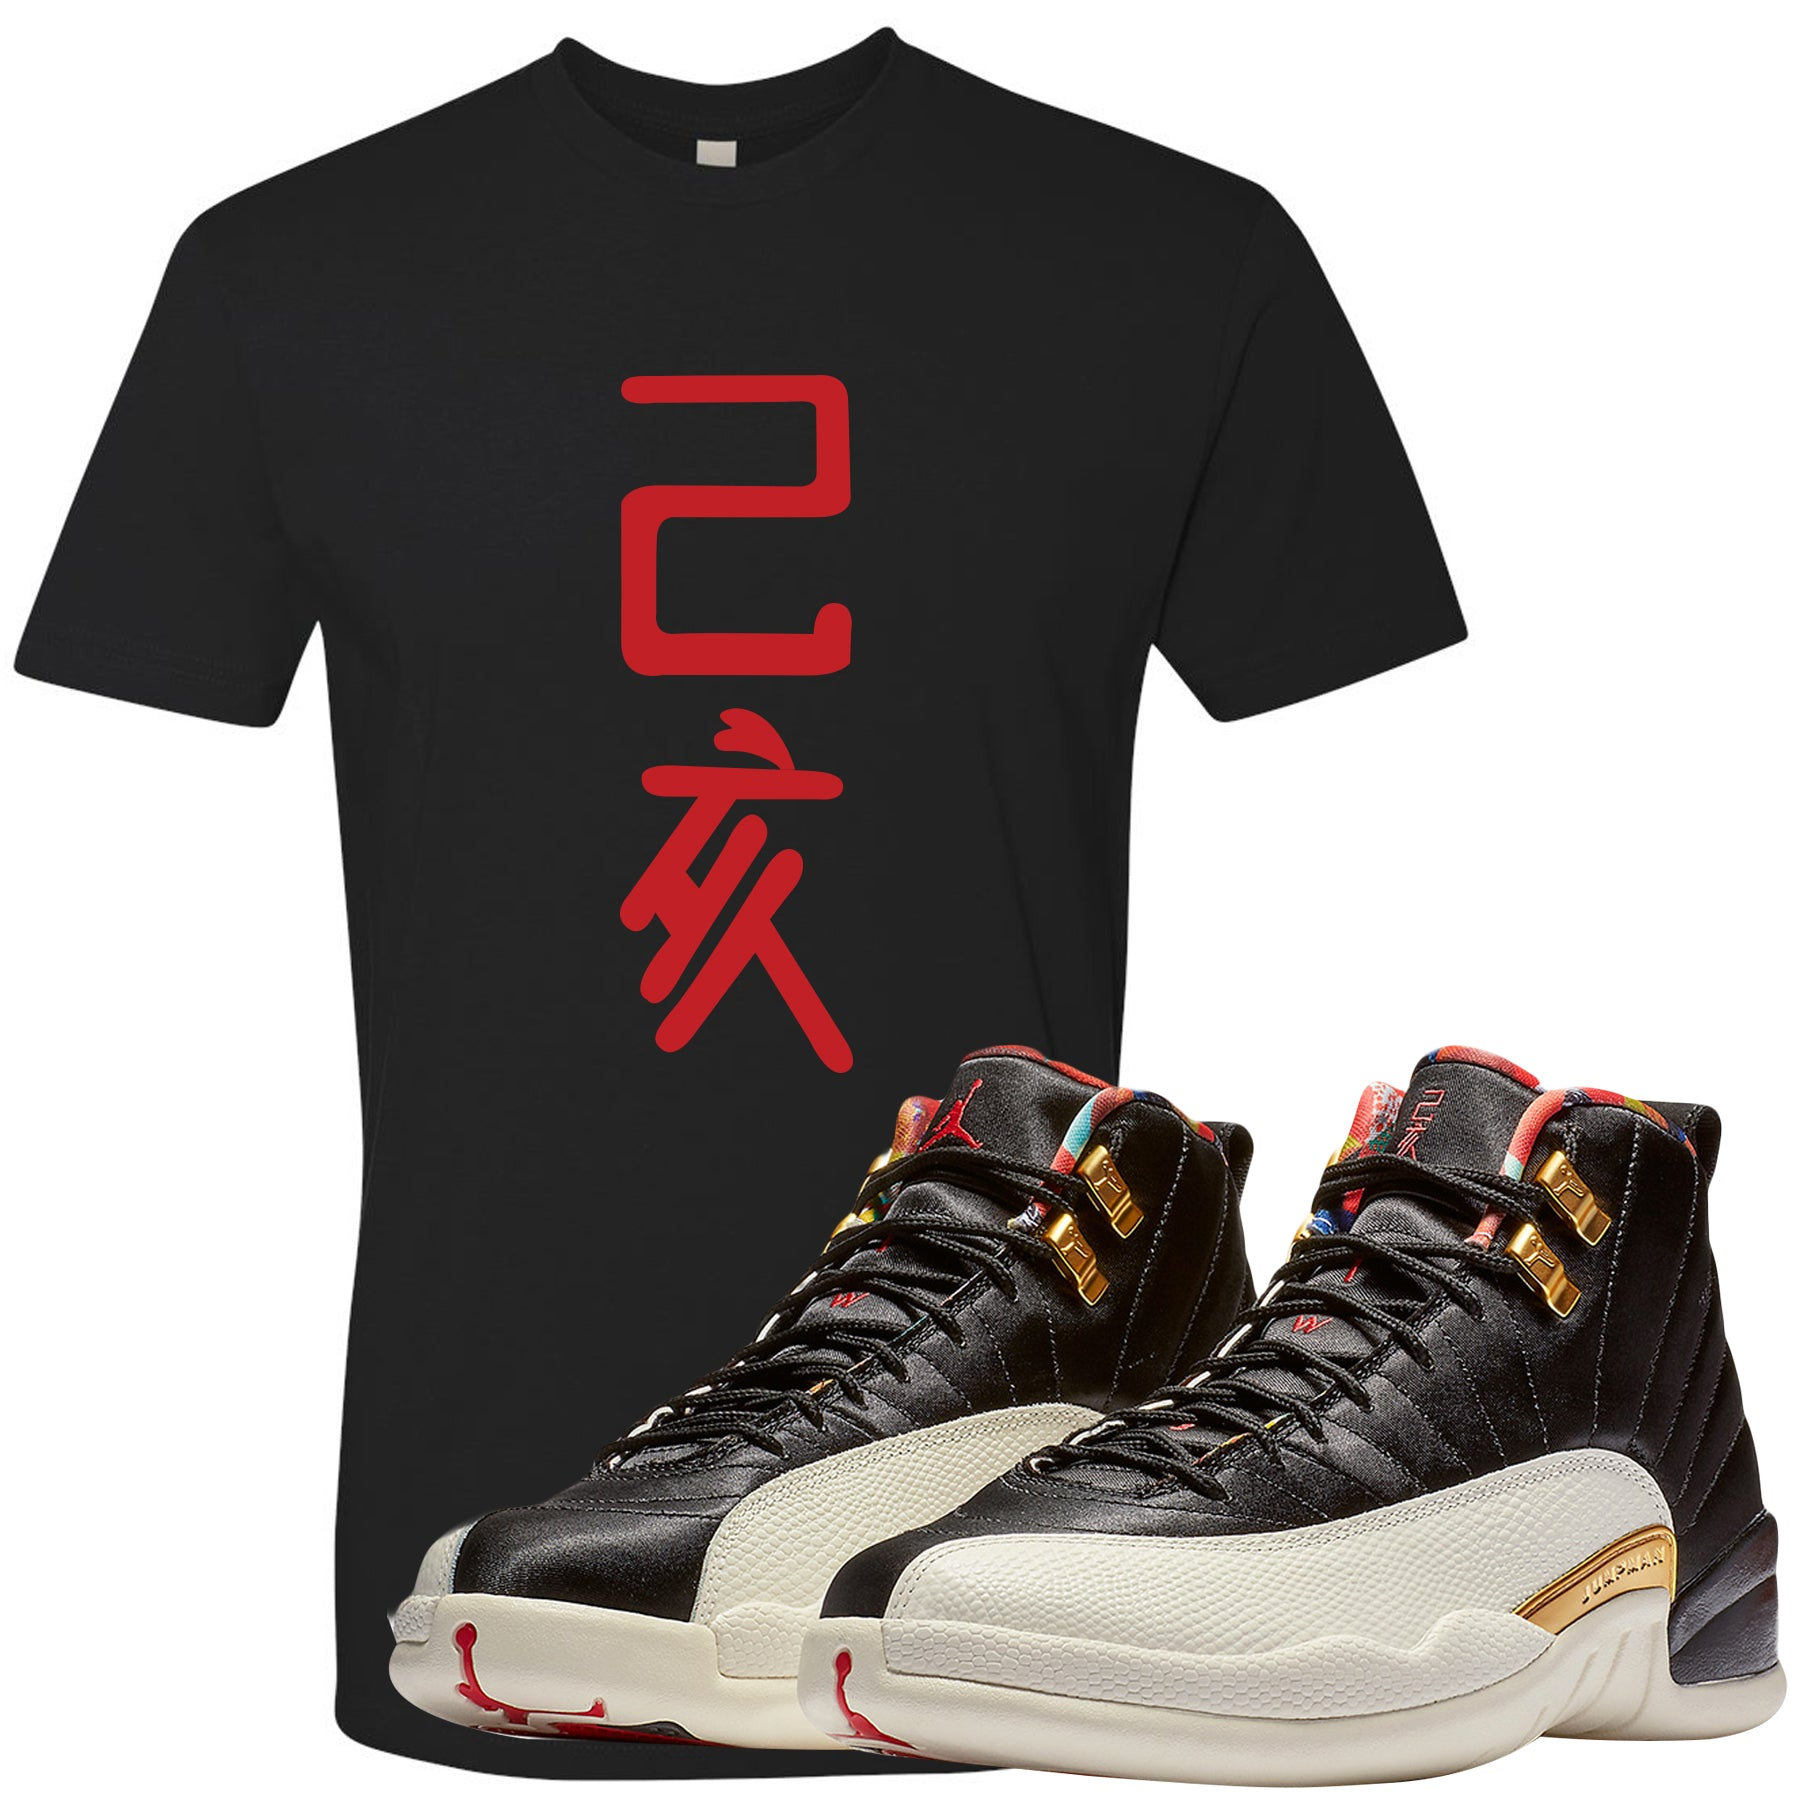 6970fb679912d0 Match your pair of Chinese New Year Jordan 12s with this Jordan 12 Chinese  New Year